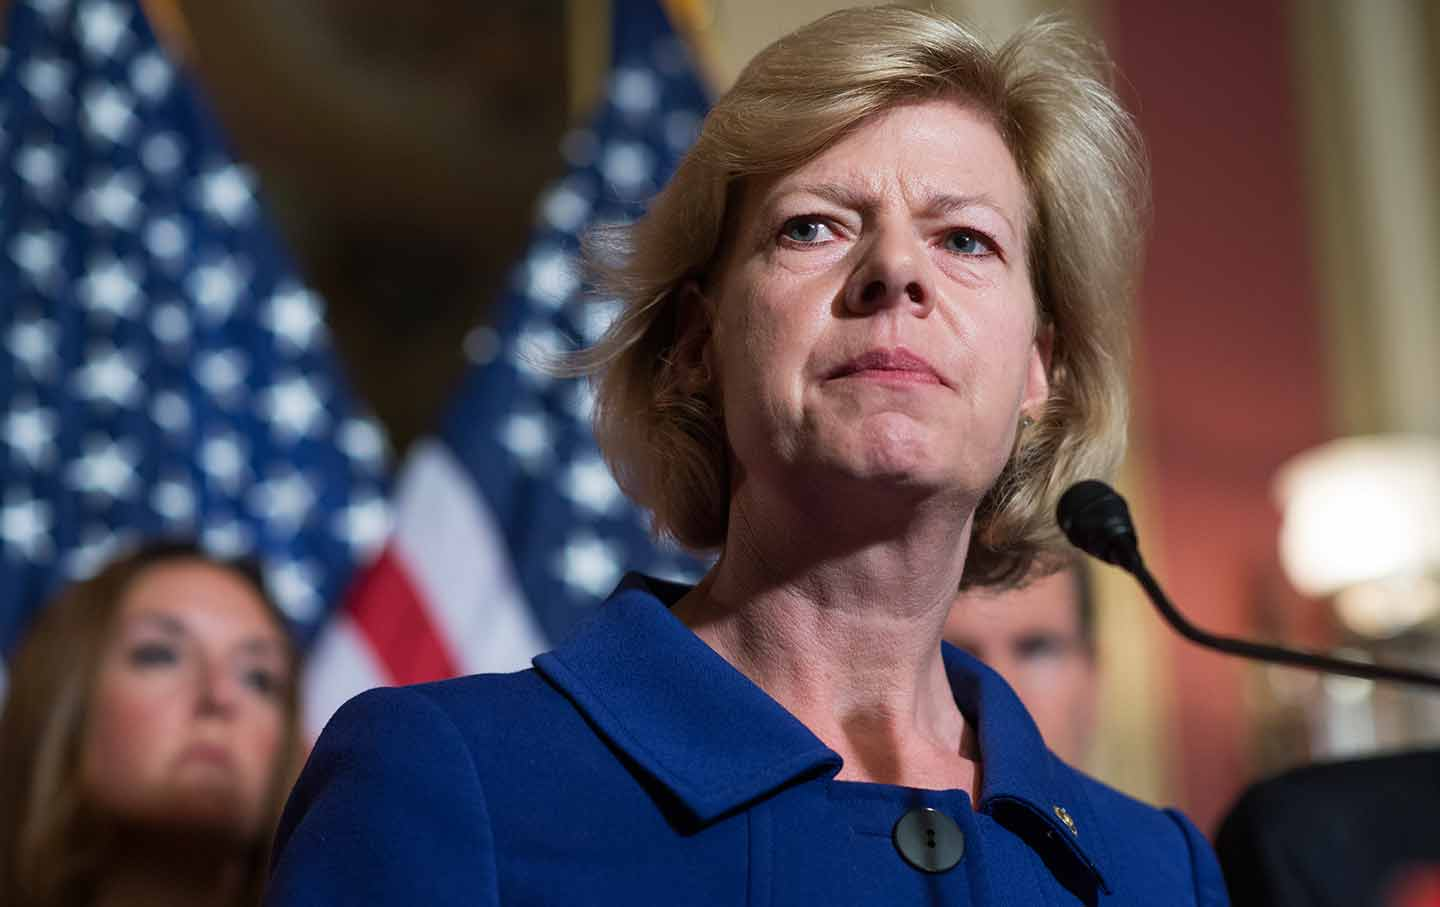 tammy baldwin fierce